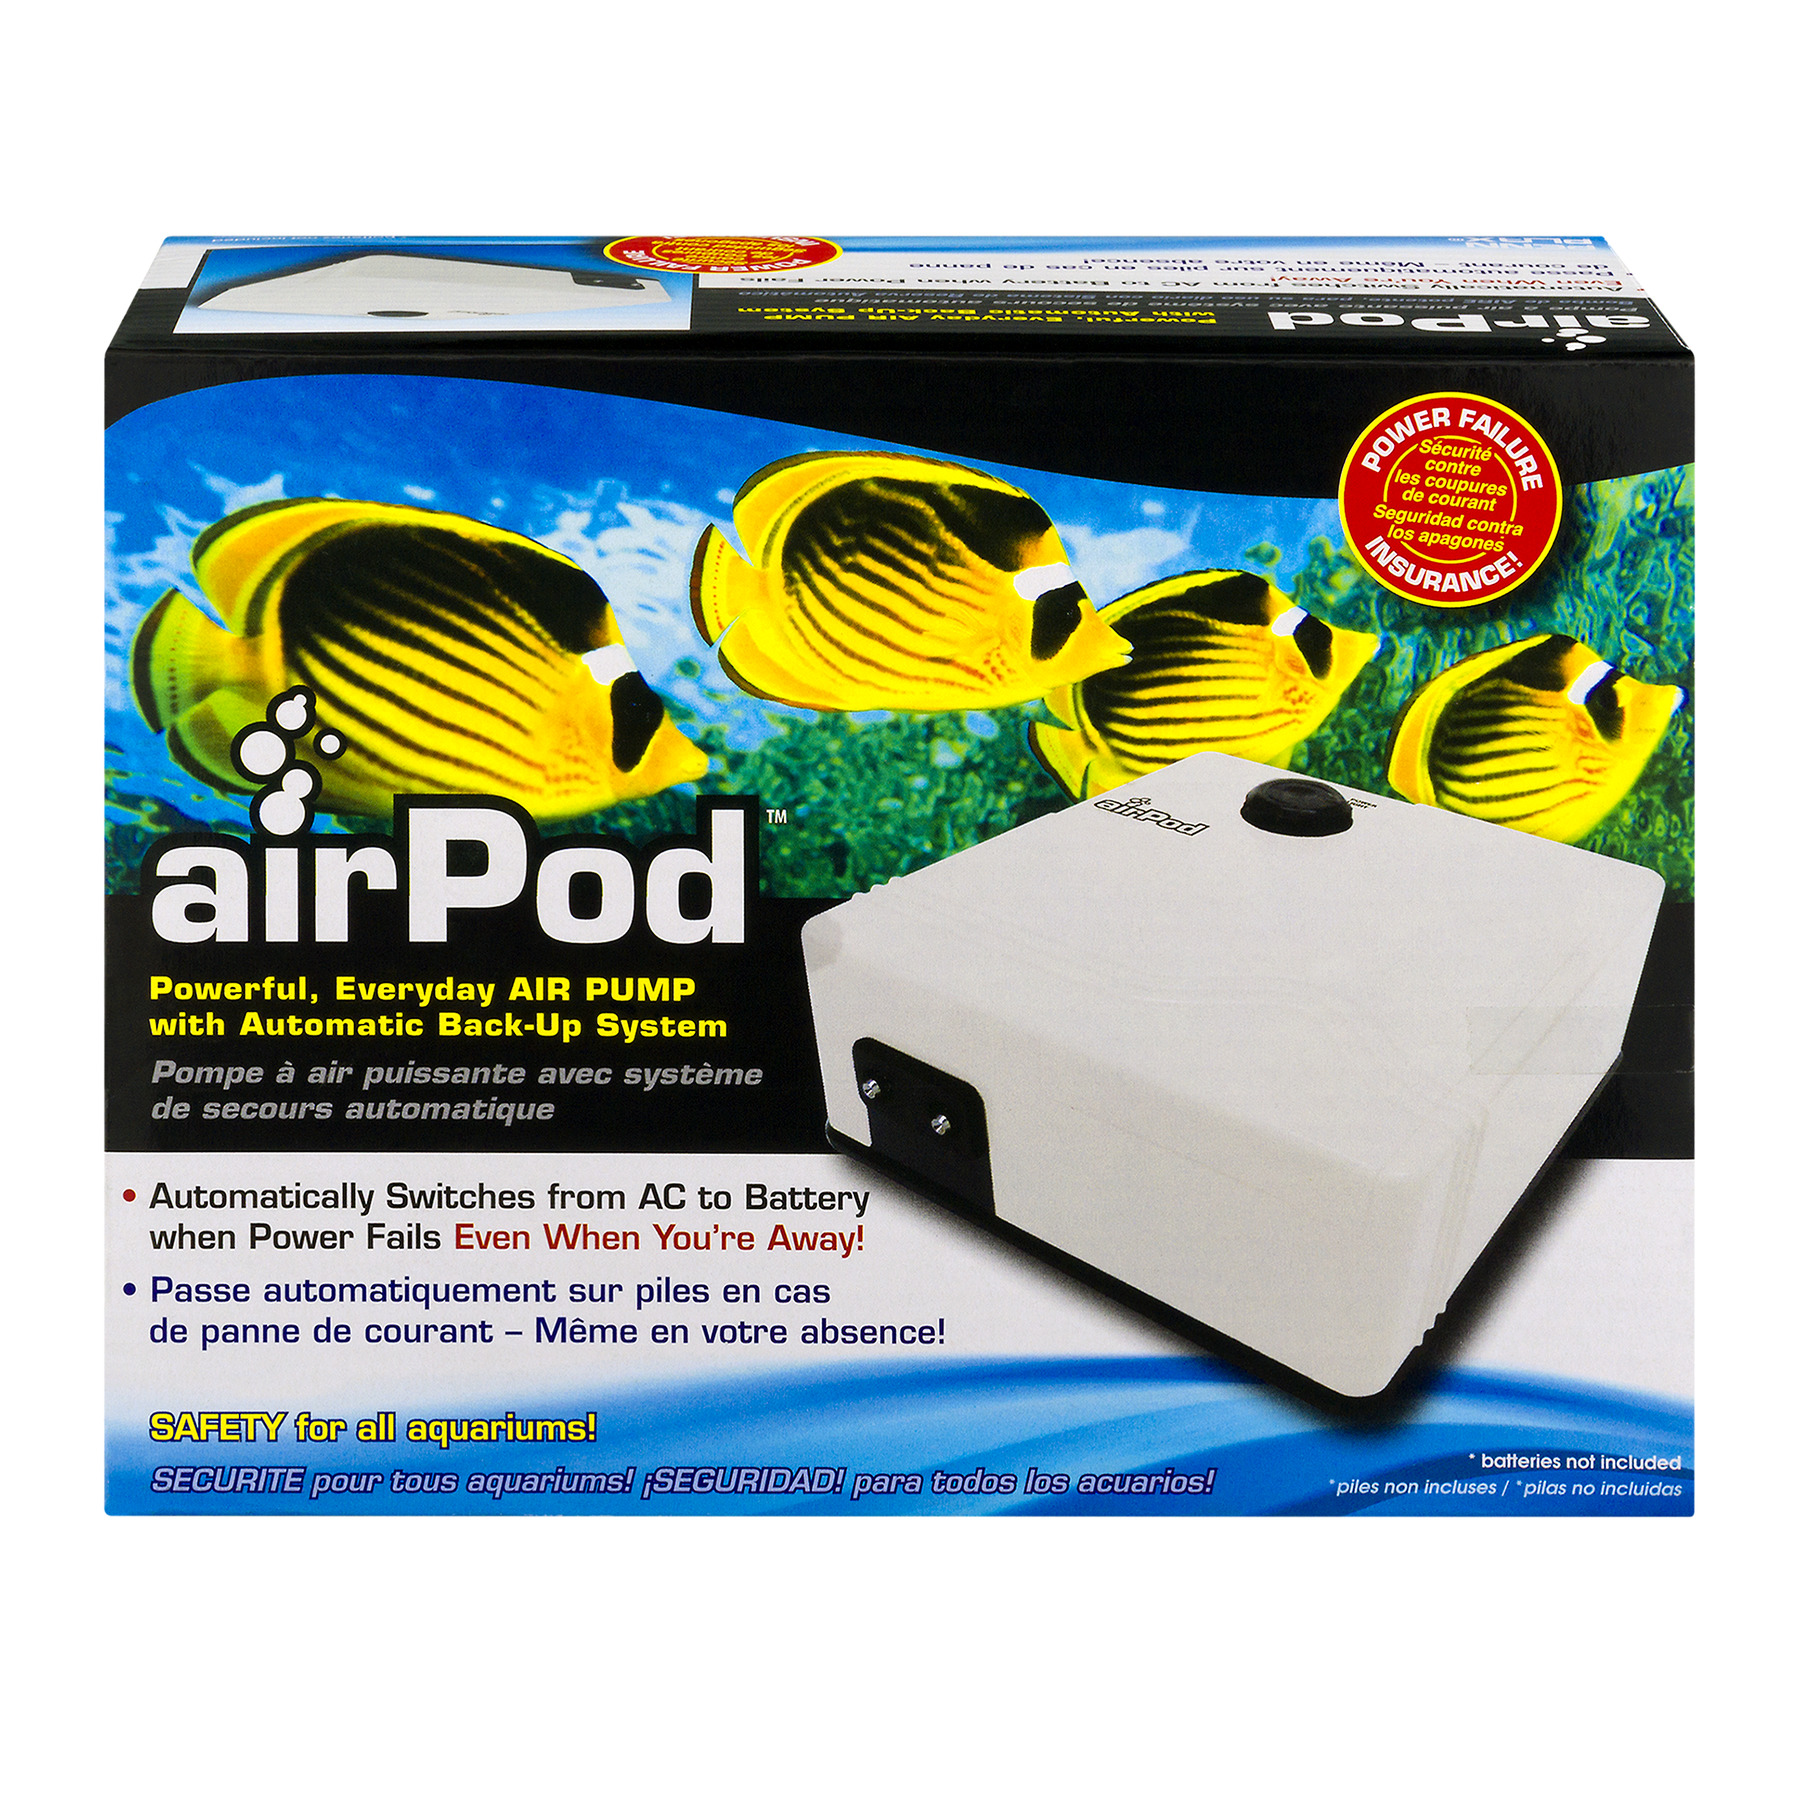 Penn-Plax airPod Air Pump with Automatic Backup System, 1.0 CT